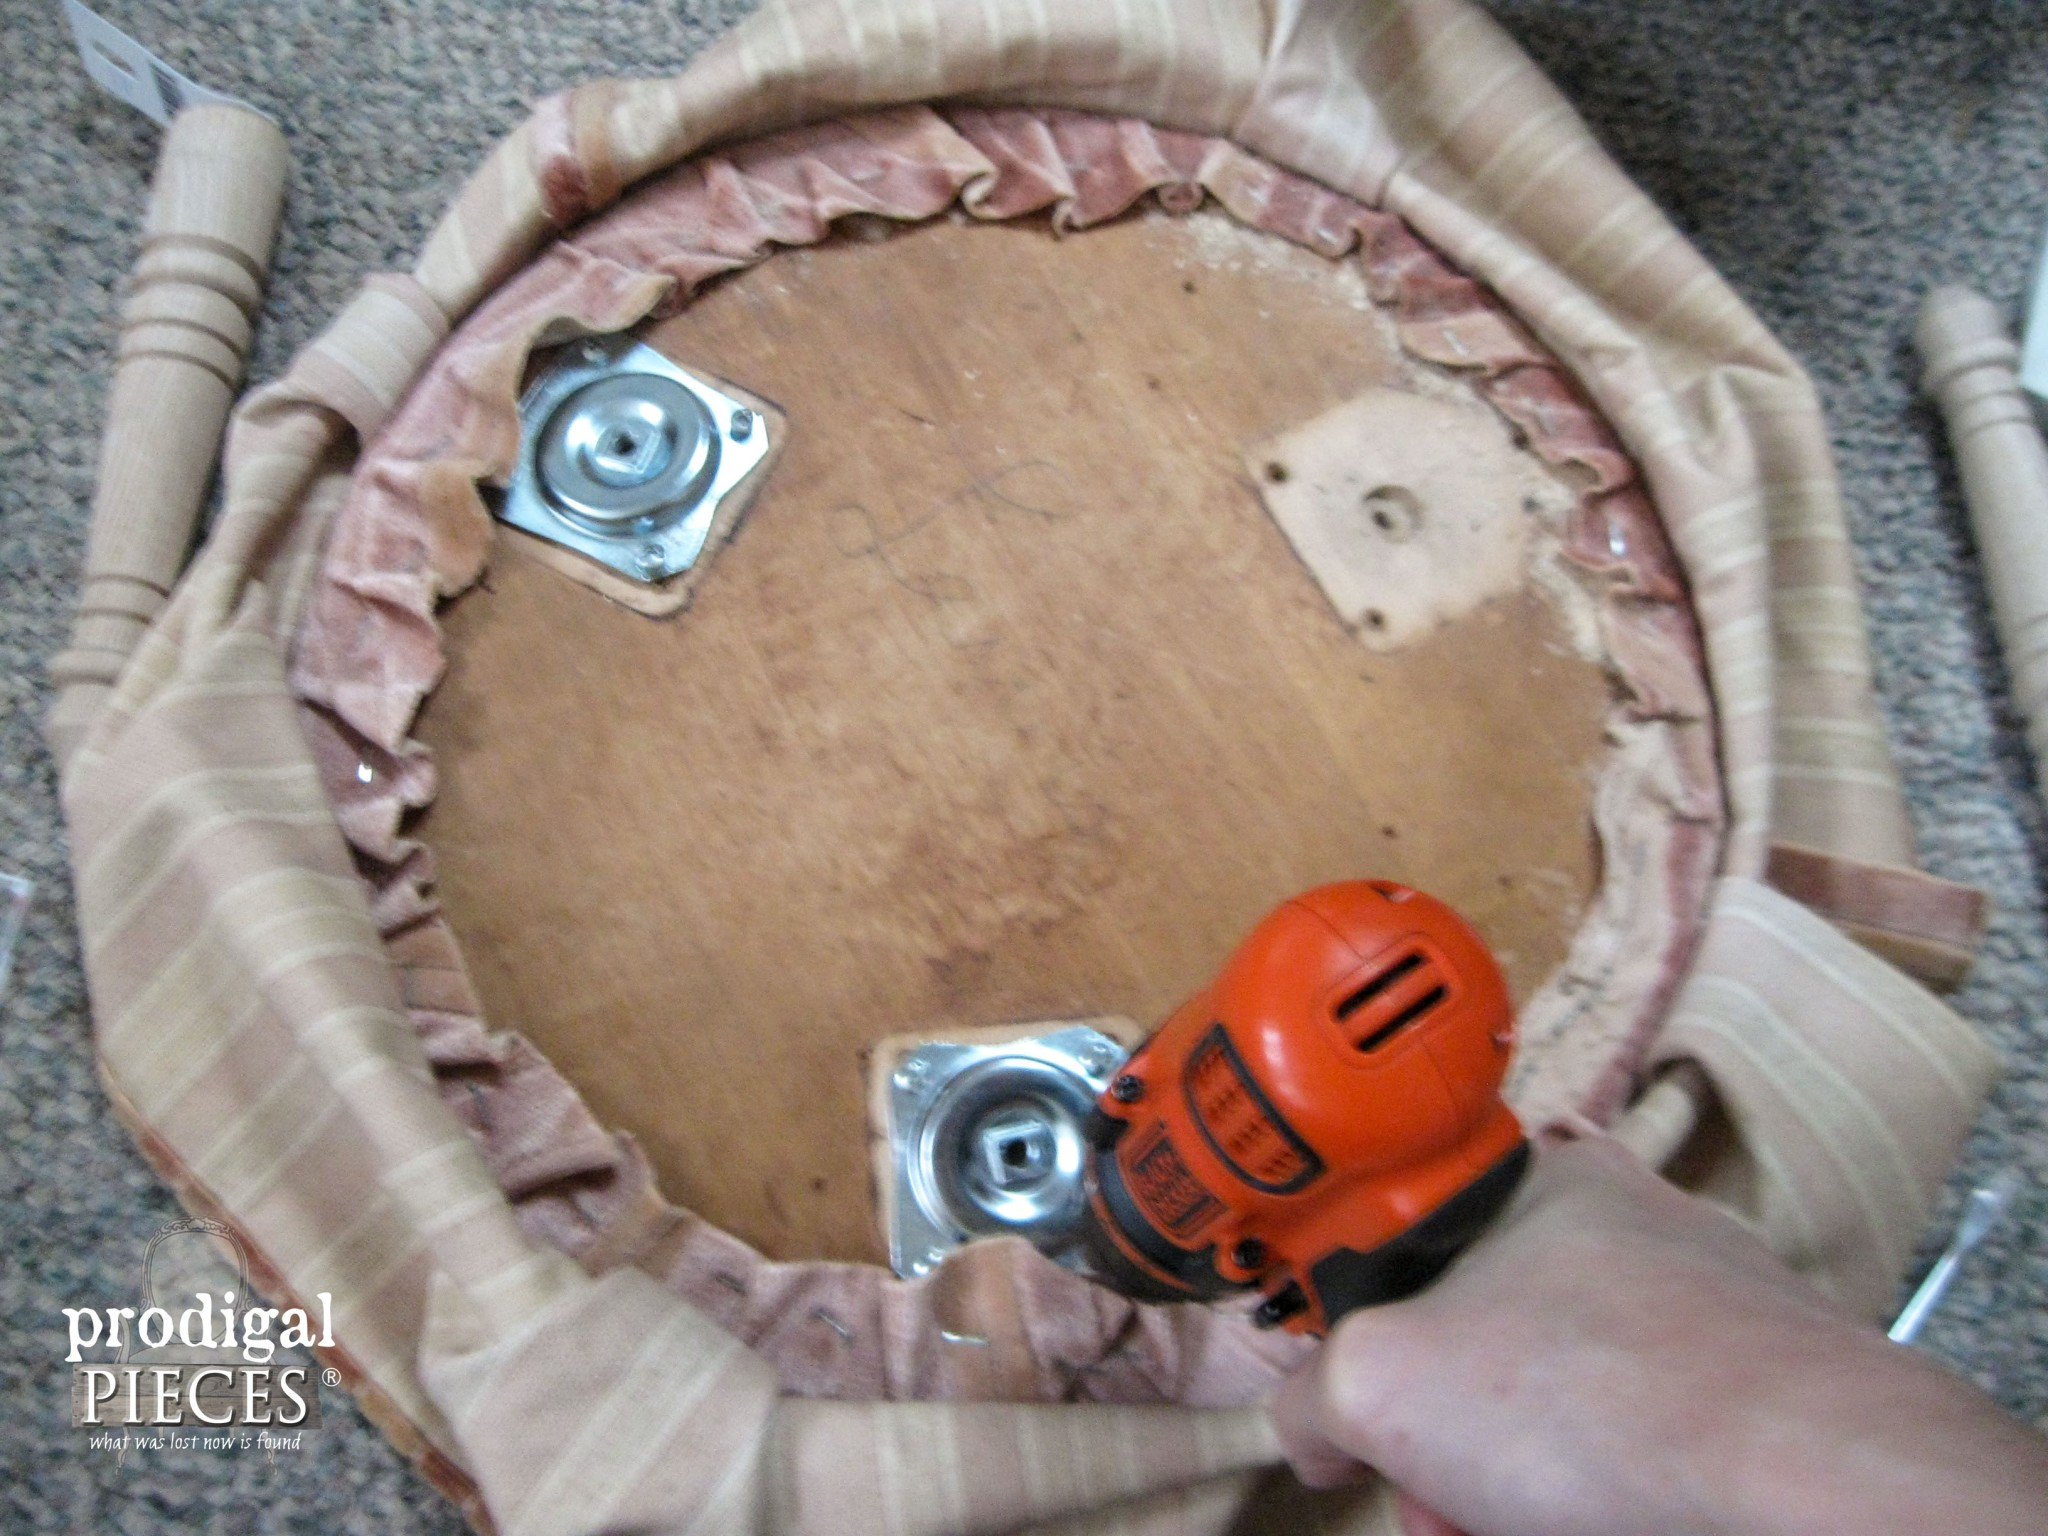 Replacing Upholstered Footstool Brackets | Prodigal Pieces | www.prodigalpieces.com